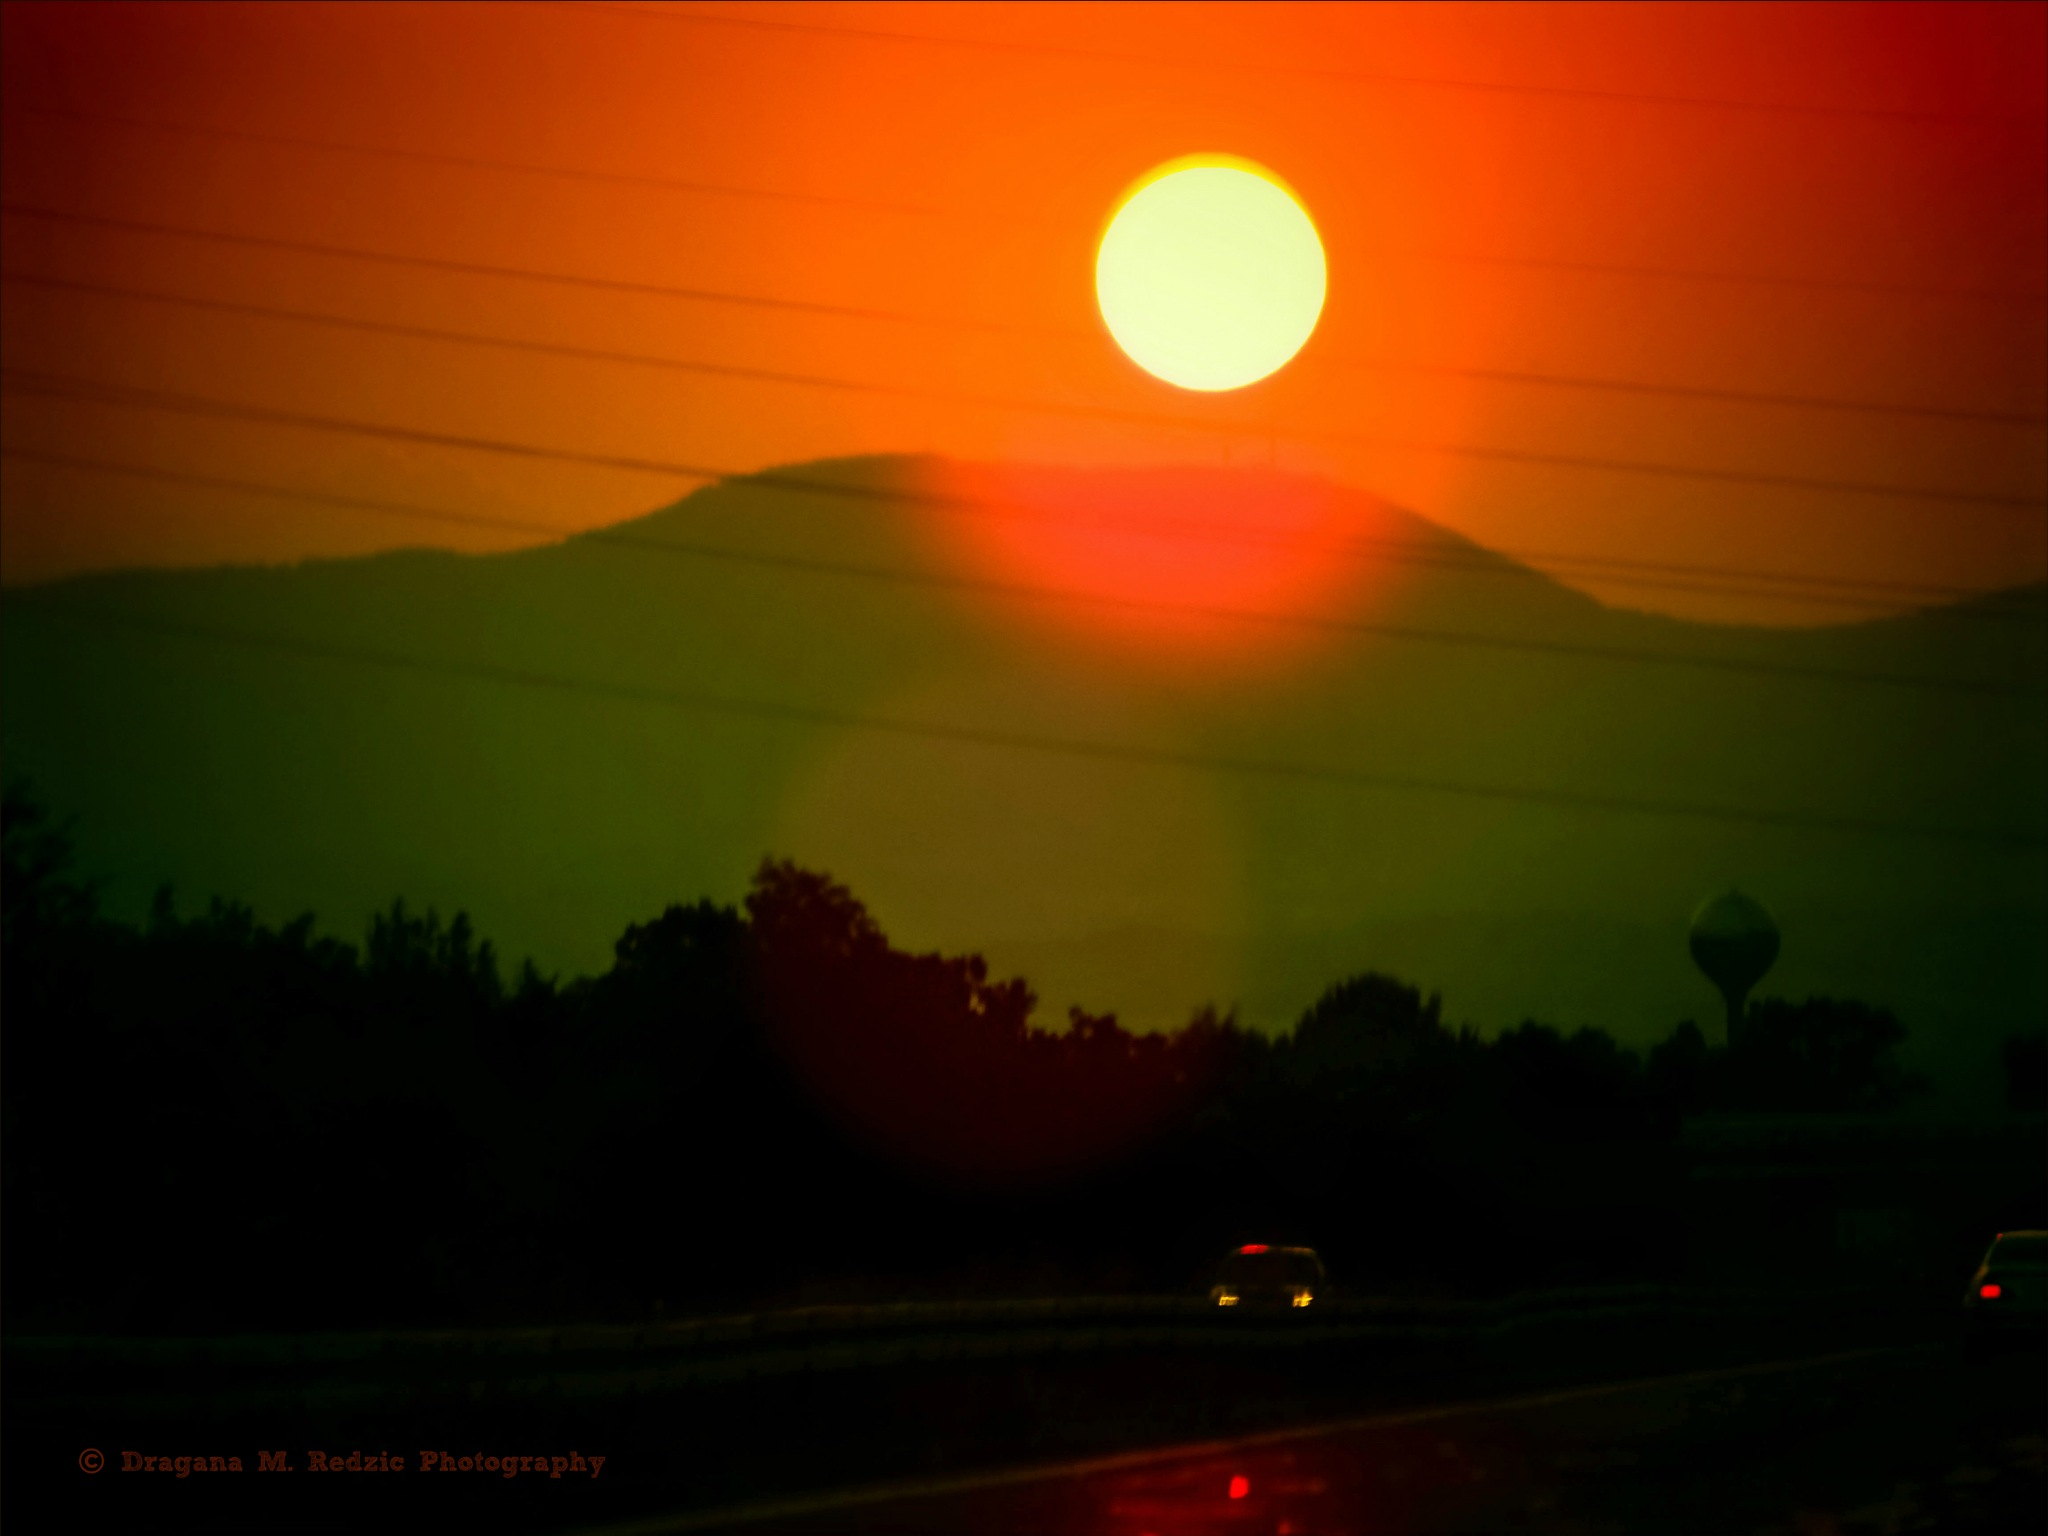 Sunset over the Serbia roads, through the glass... by Драгана М. Реџић